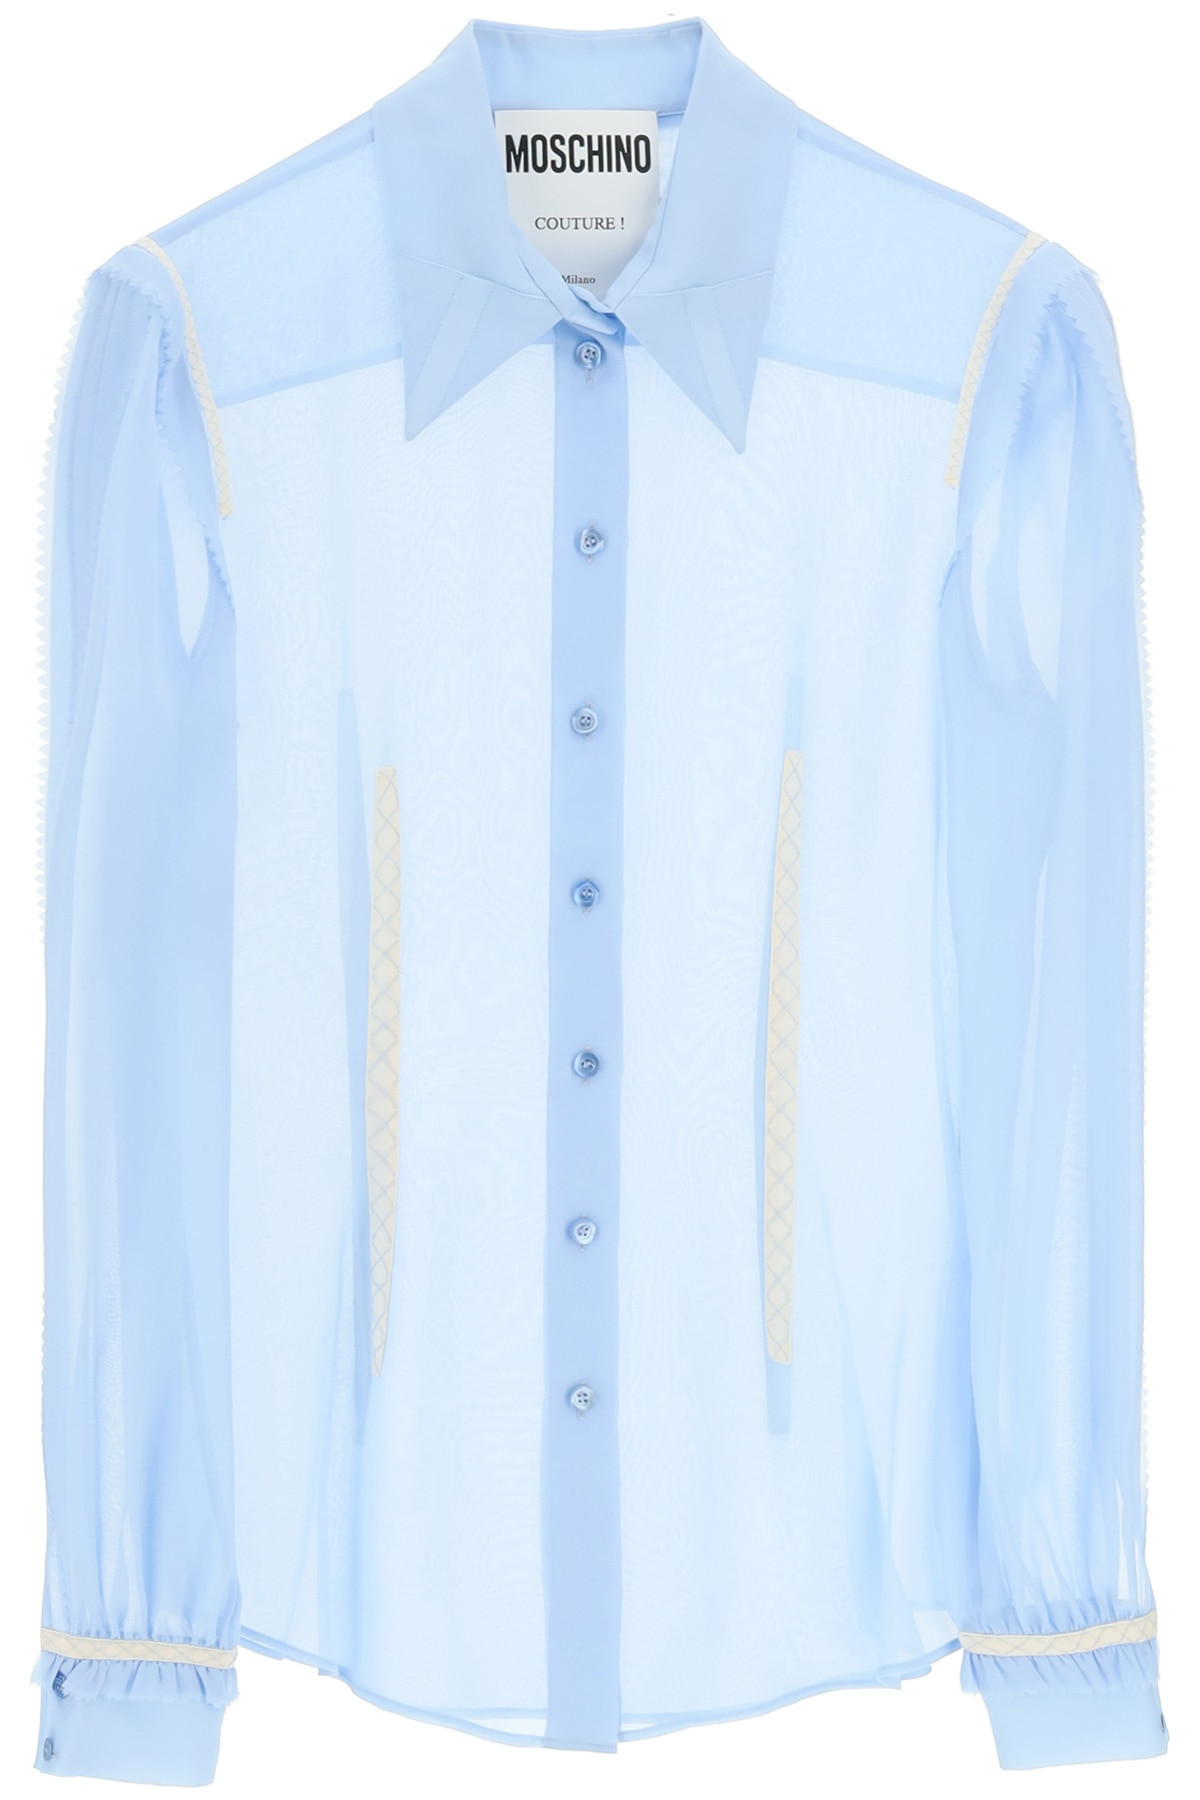 MOSCHINO GEORGETTE SILK SHIRT WITH EMBROIDERIES 40 Light blue, White Silk